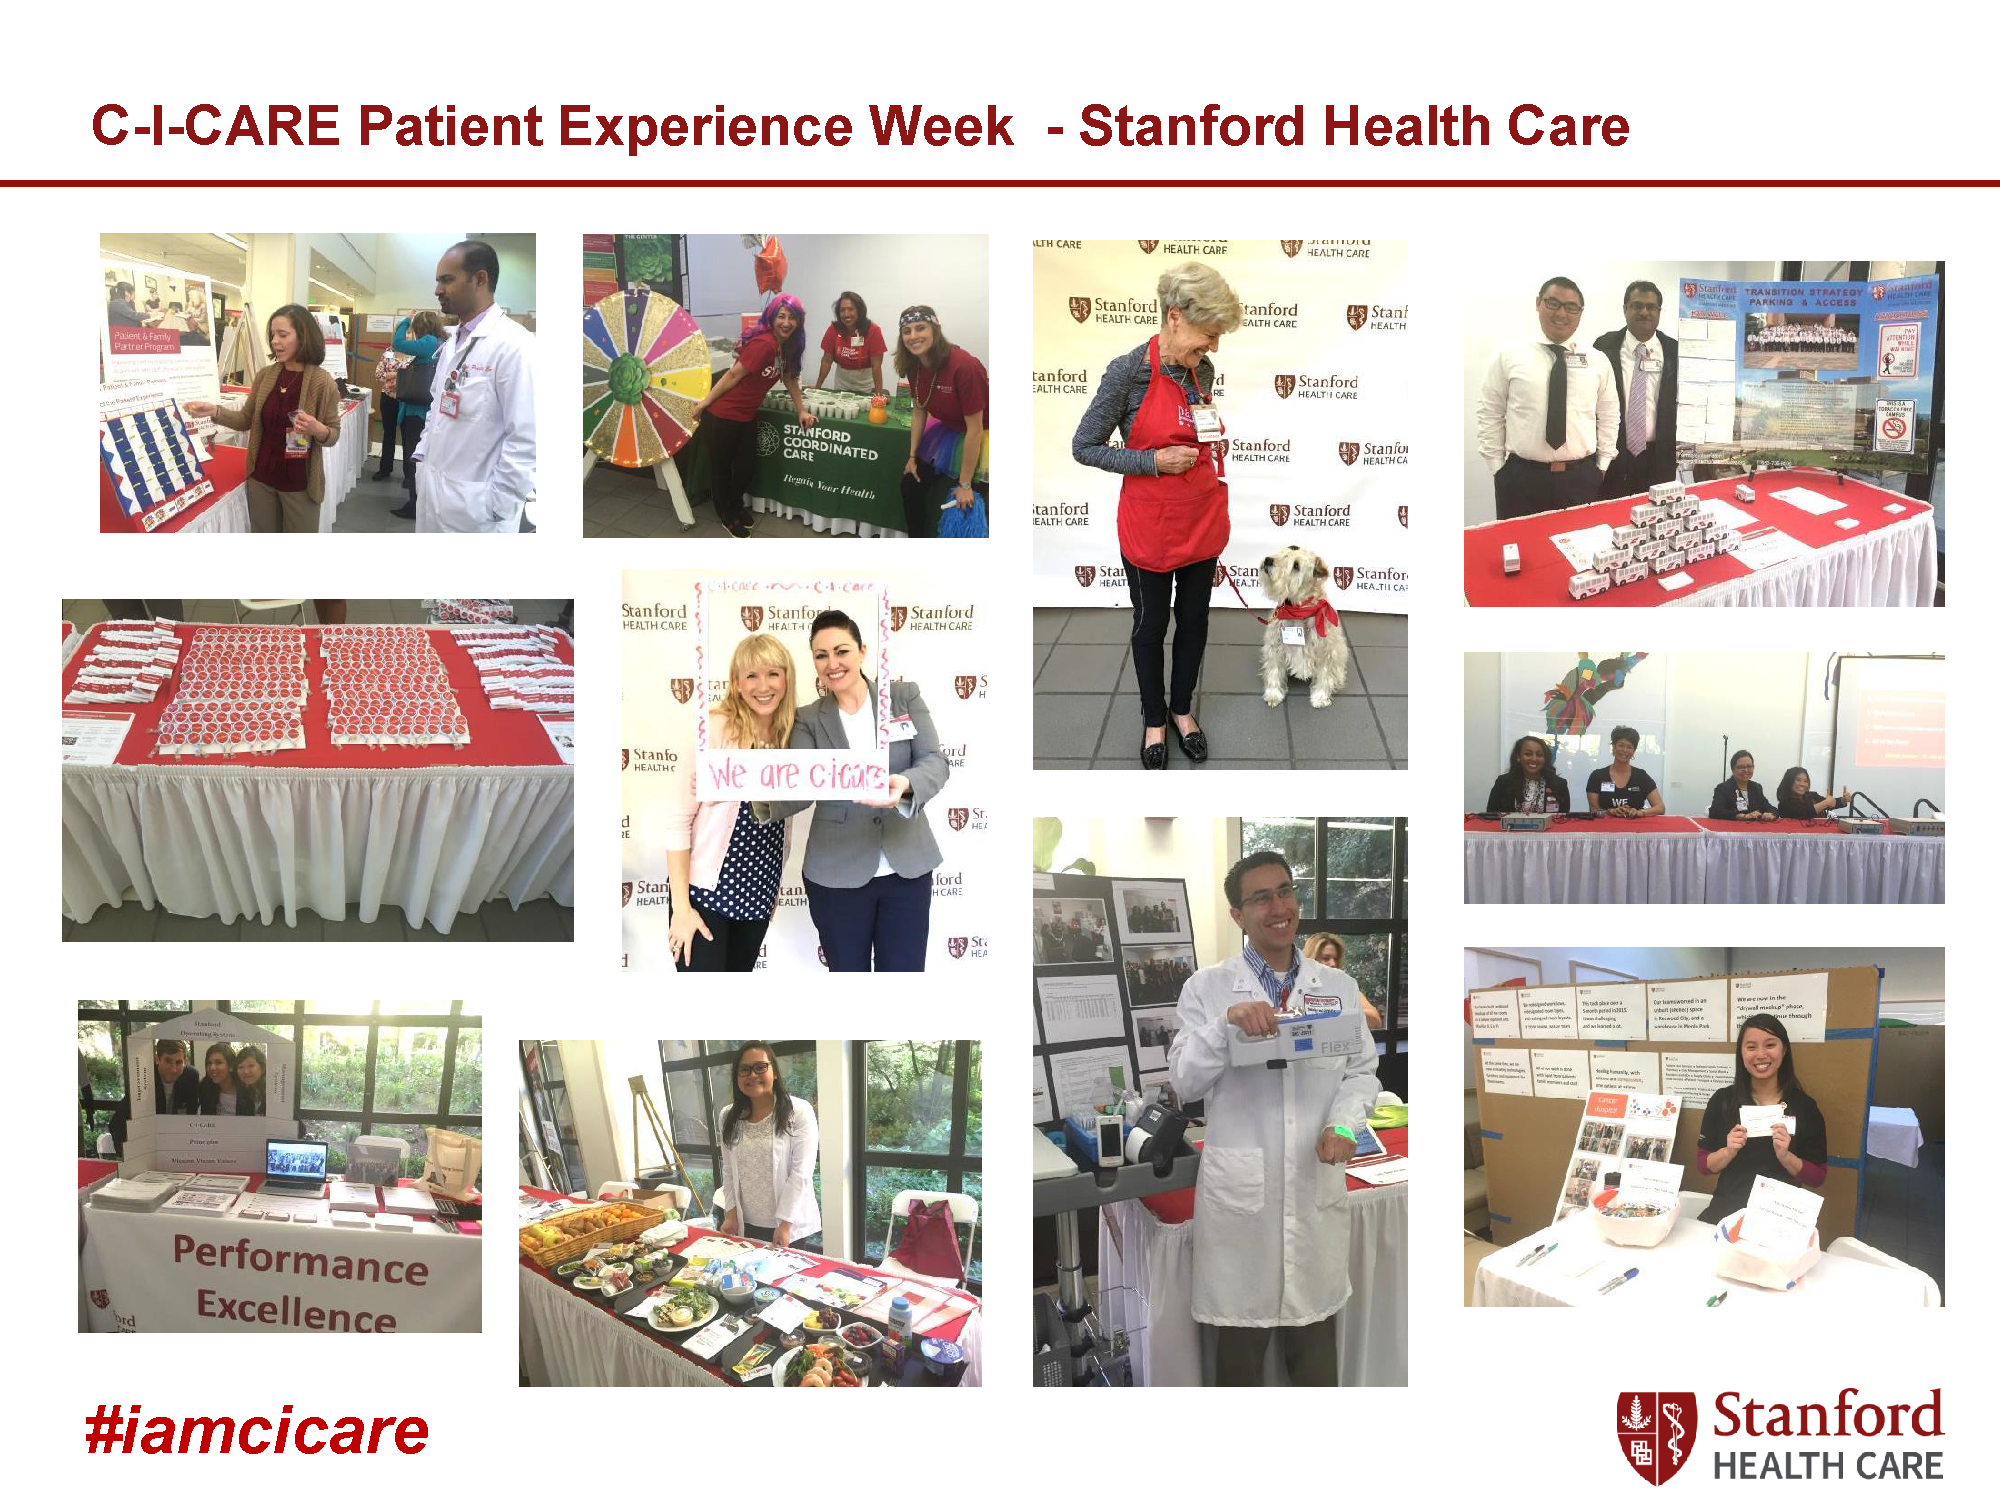 patient experience week how did you celebrate the beryl the enthusiasm of patients families and staff for the spirit of c i care and patient experience it was a week full of joy refreshed energy